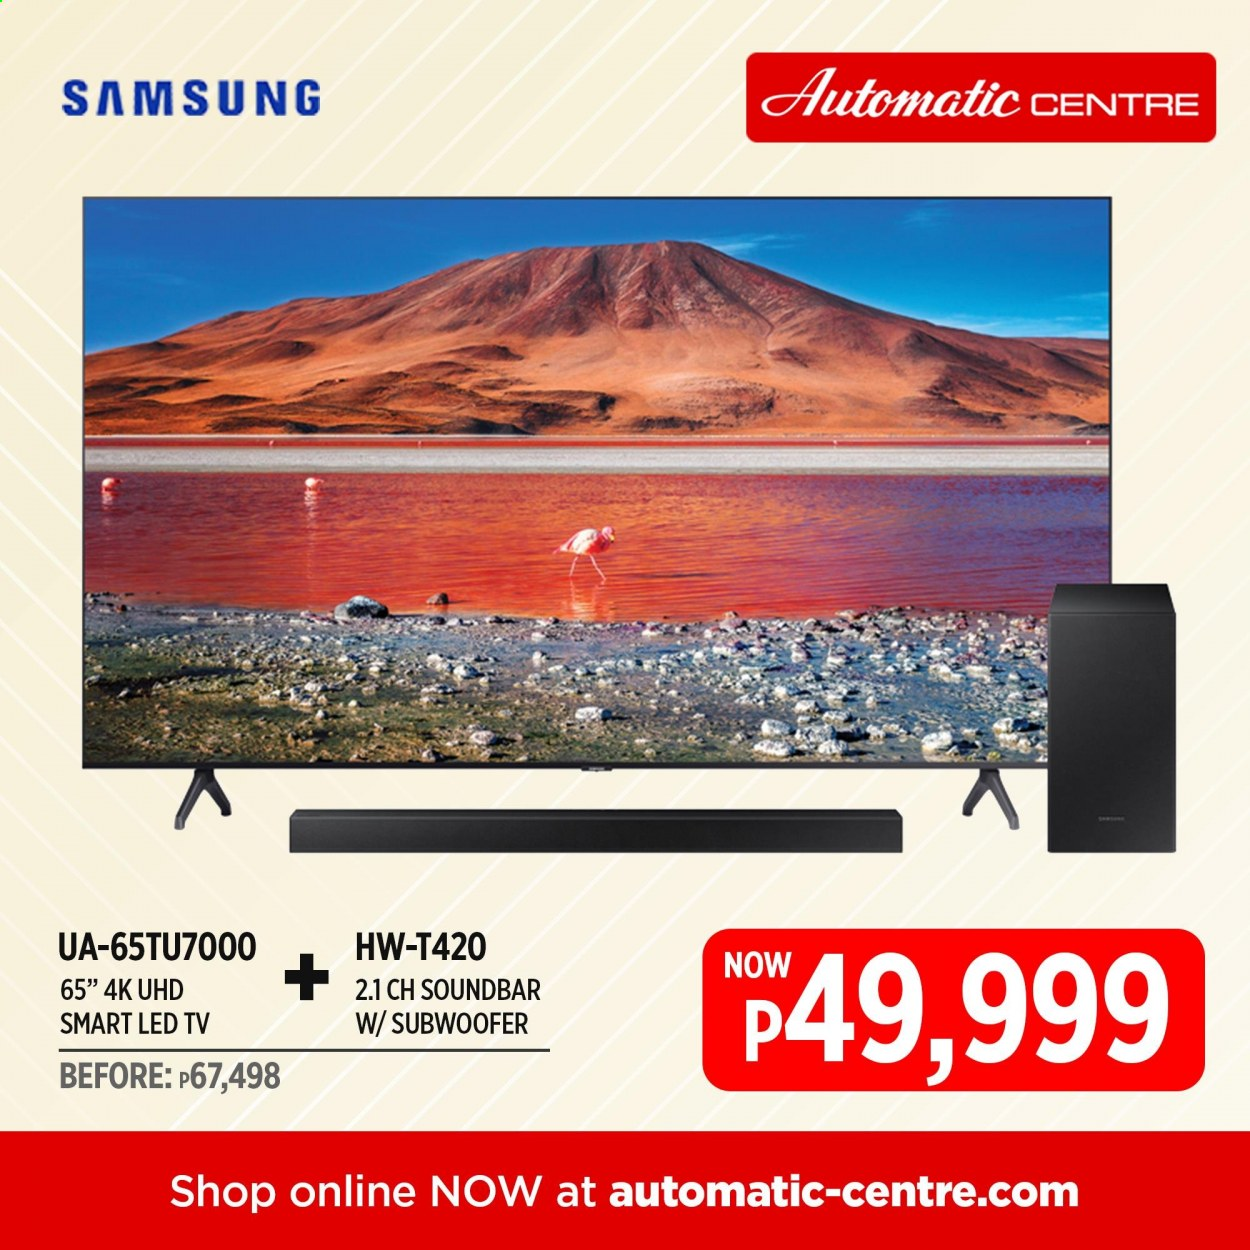 Automatic Centre offer  - Sales products - Samsung, LED TV, TV, subwoofer, sound bar. Page 1.